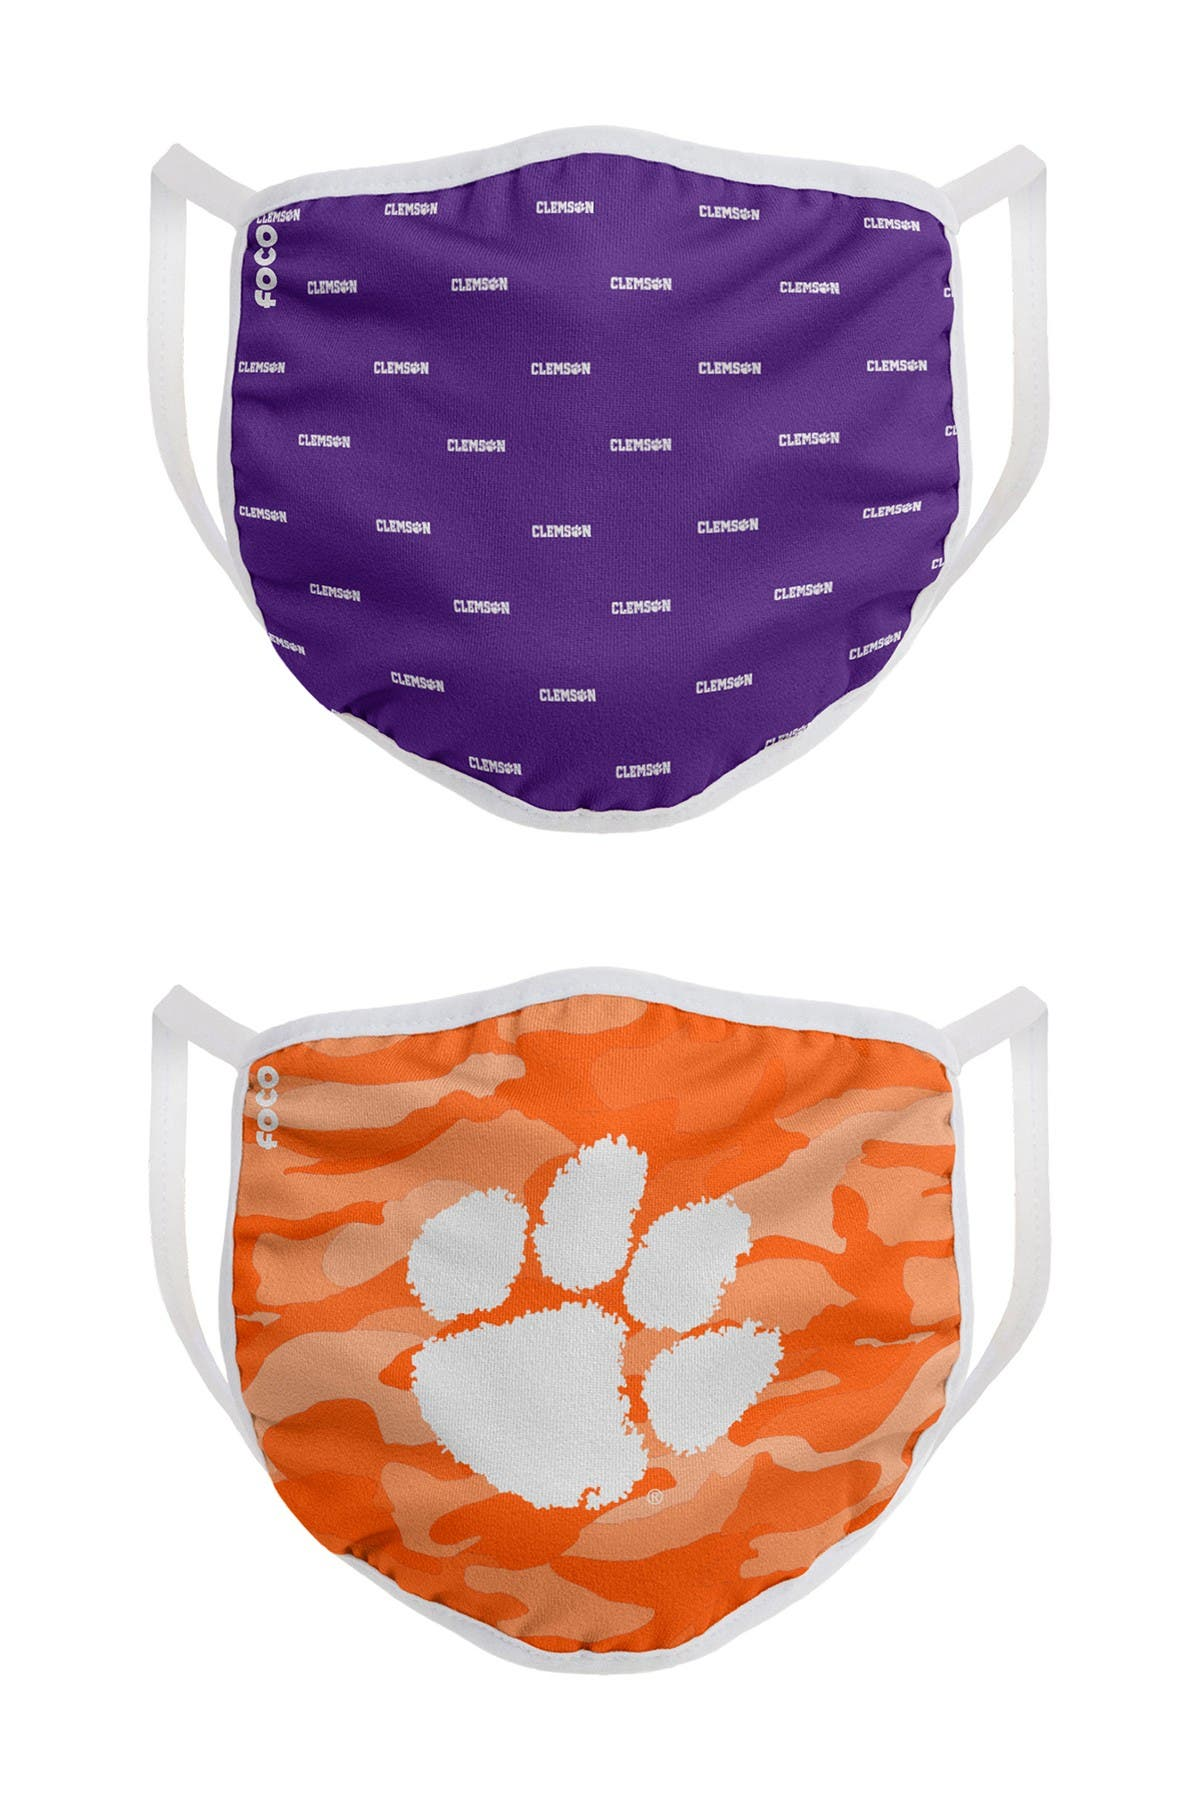 Image of FOCO NCAA Clemson Clutch Printed Face Cover - Pack of 2